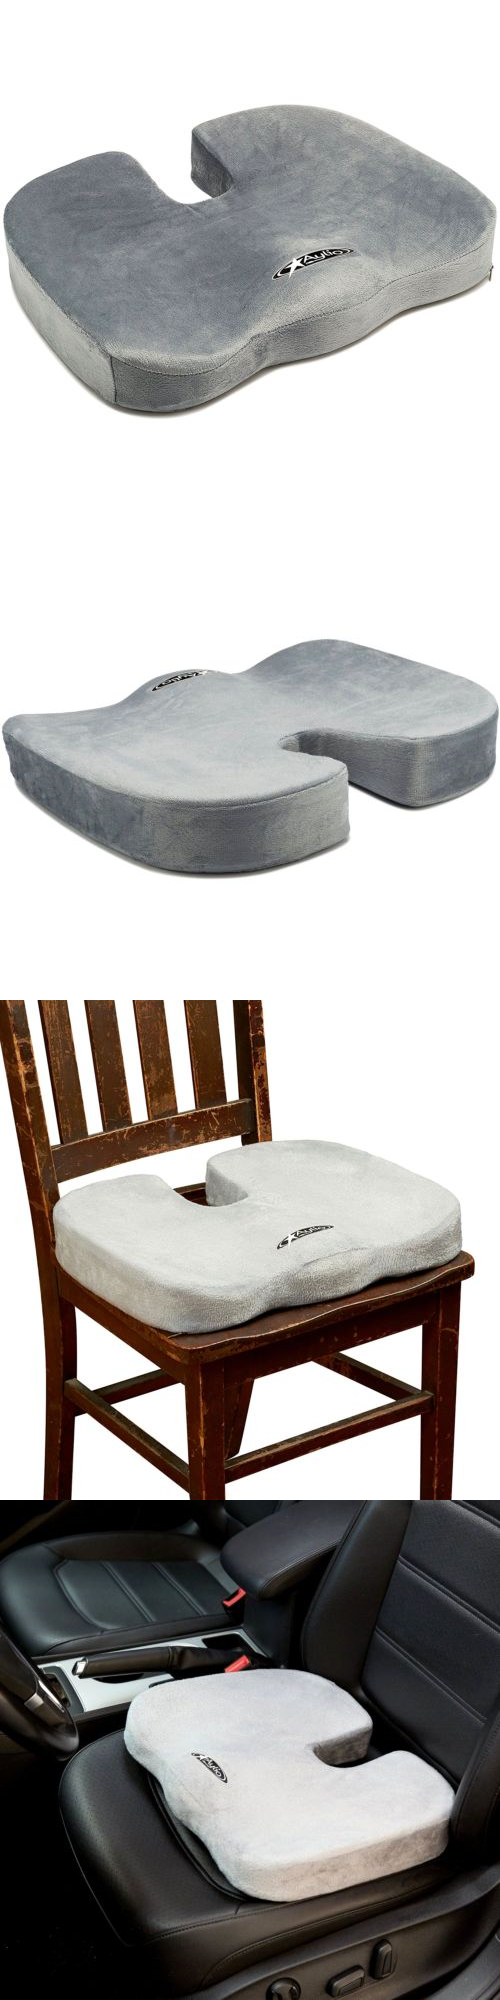 Massage pillows and bolsters orthopedic pillow seat cushion chair